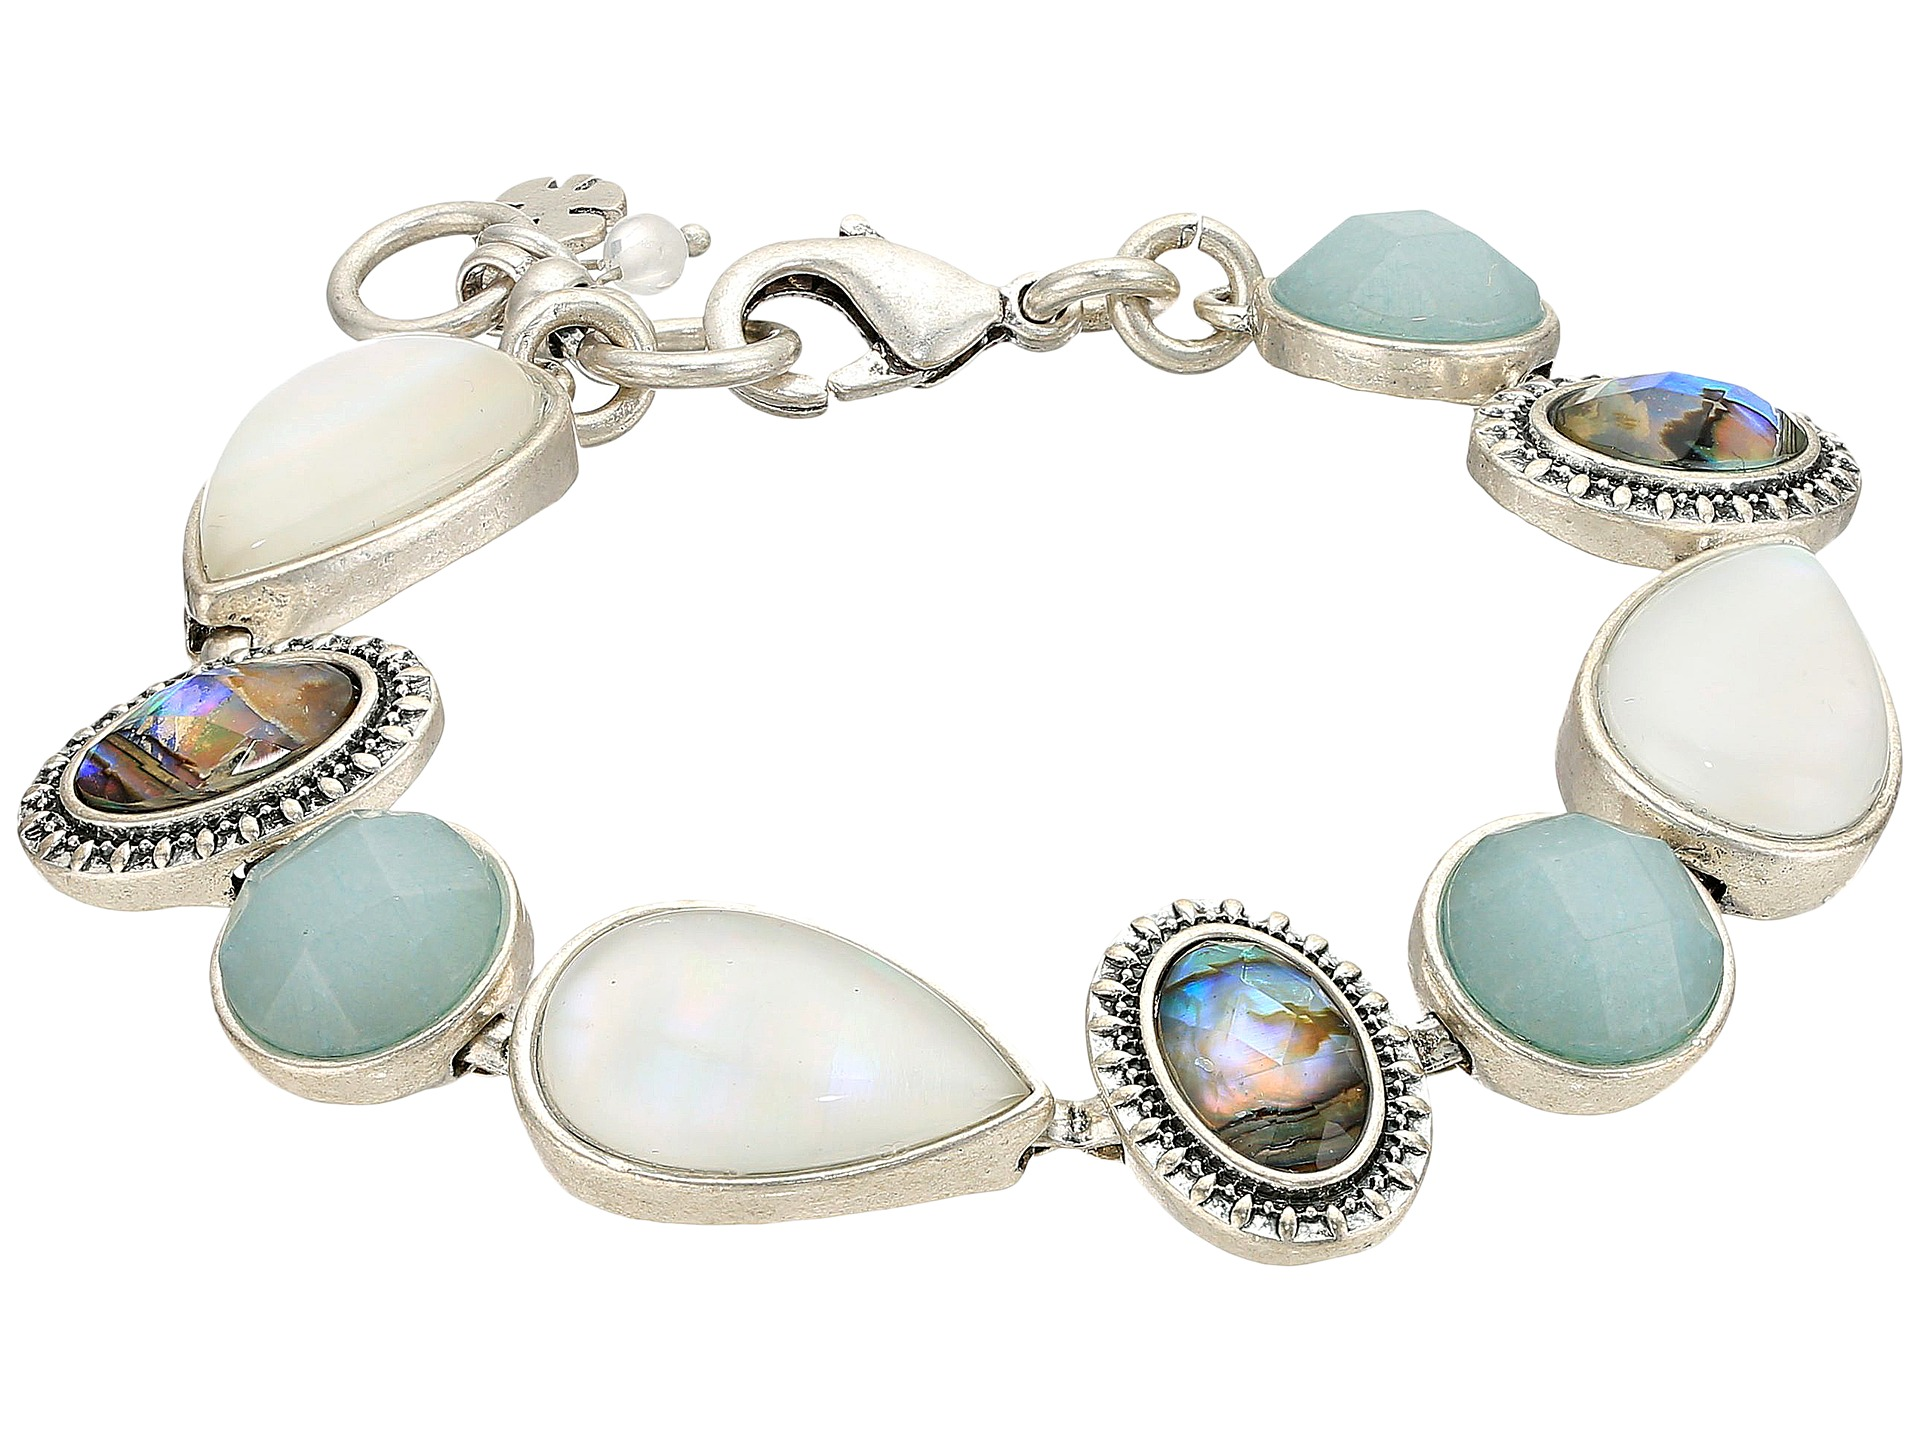 Image Result For Zappos Jewelry Box